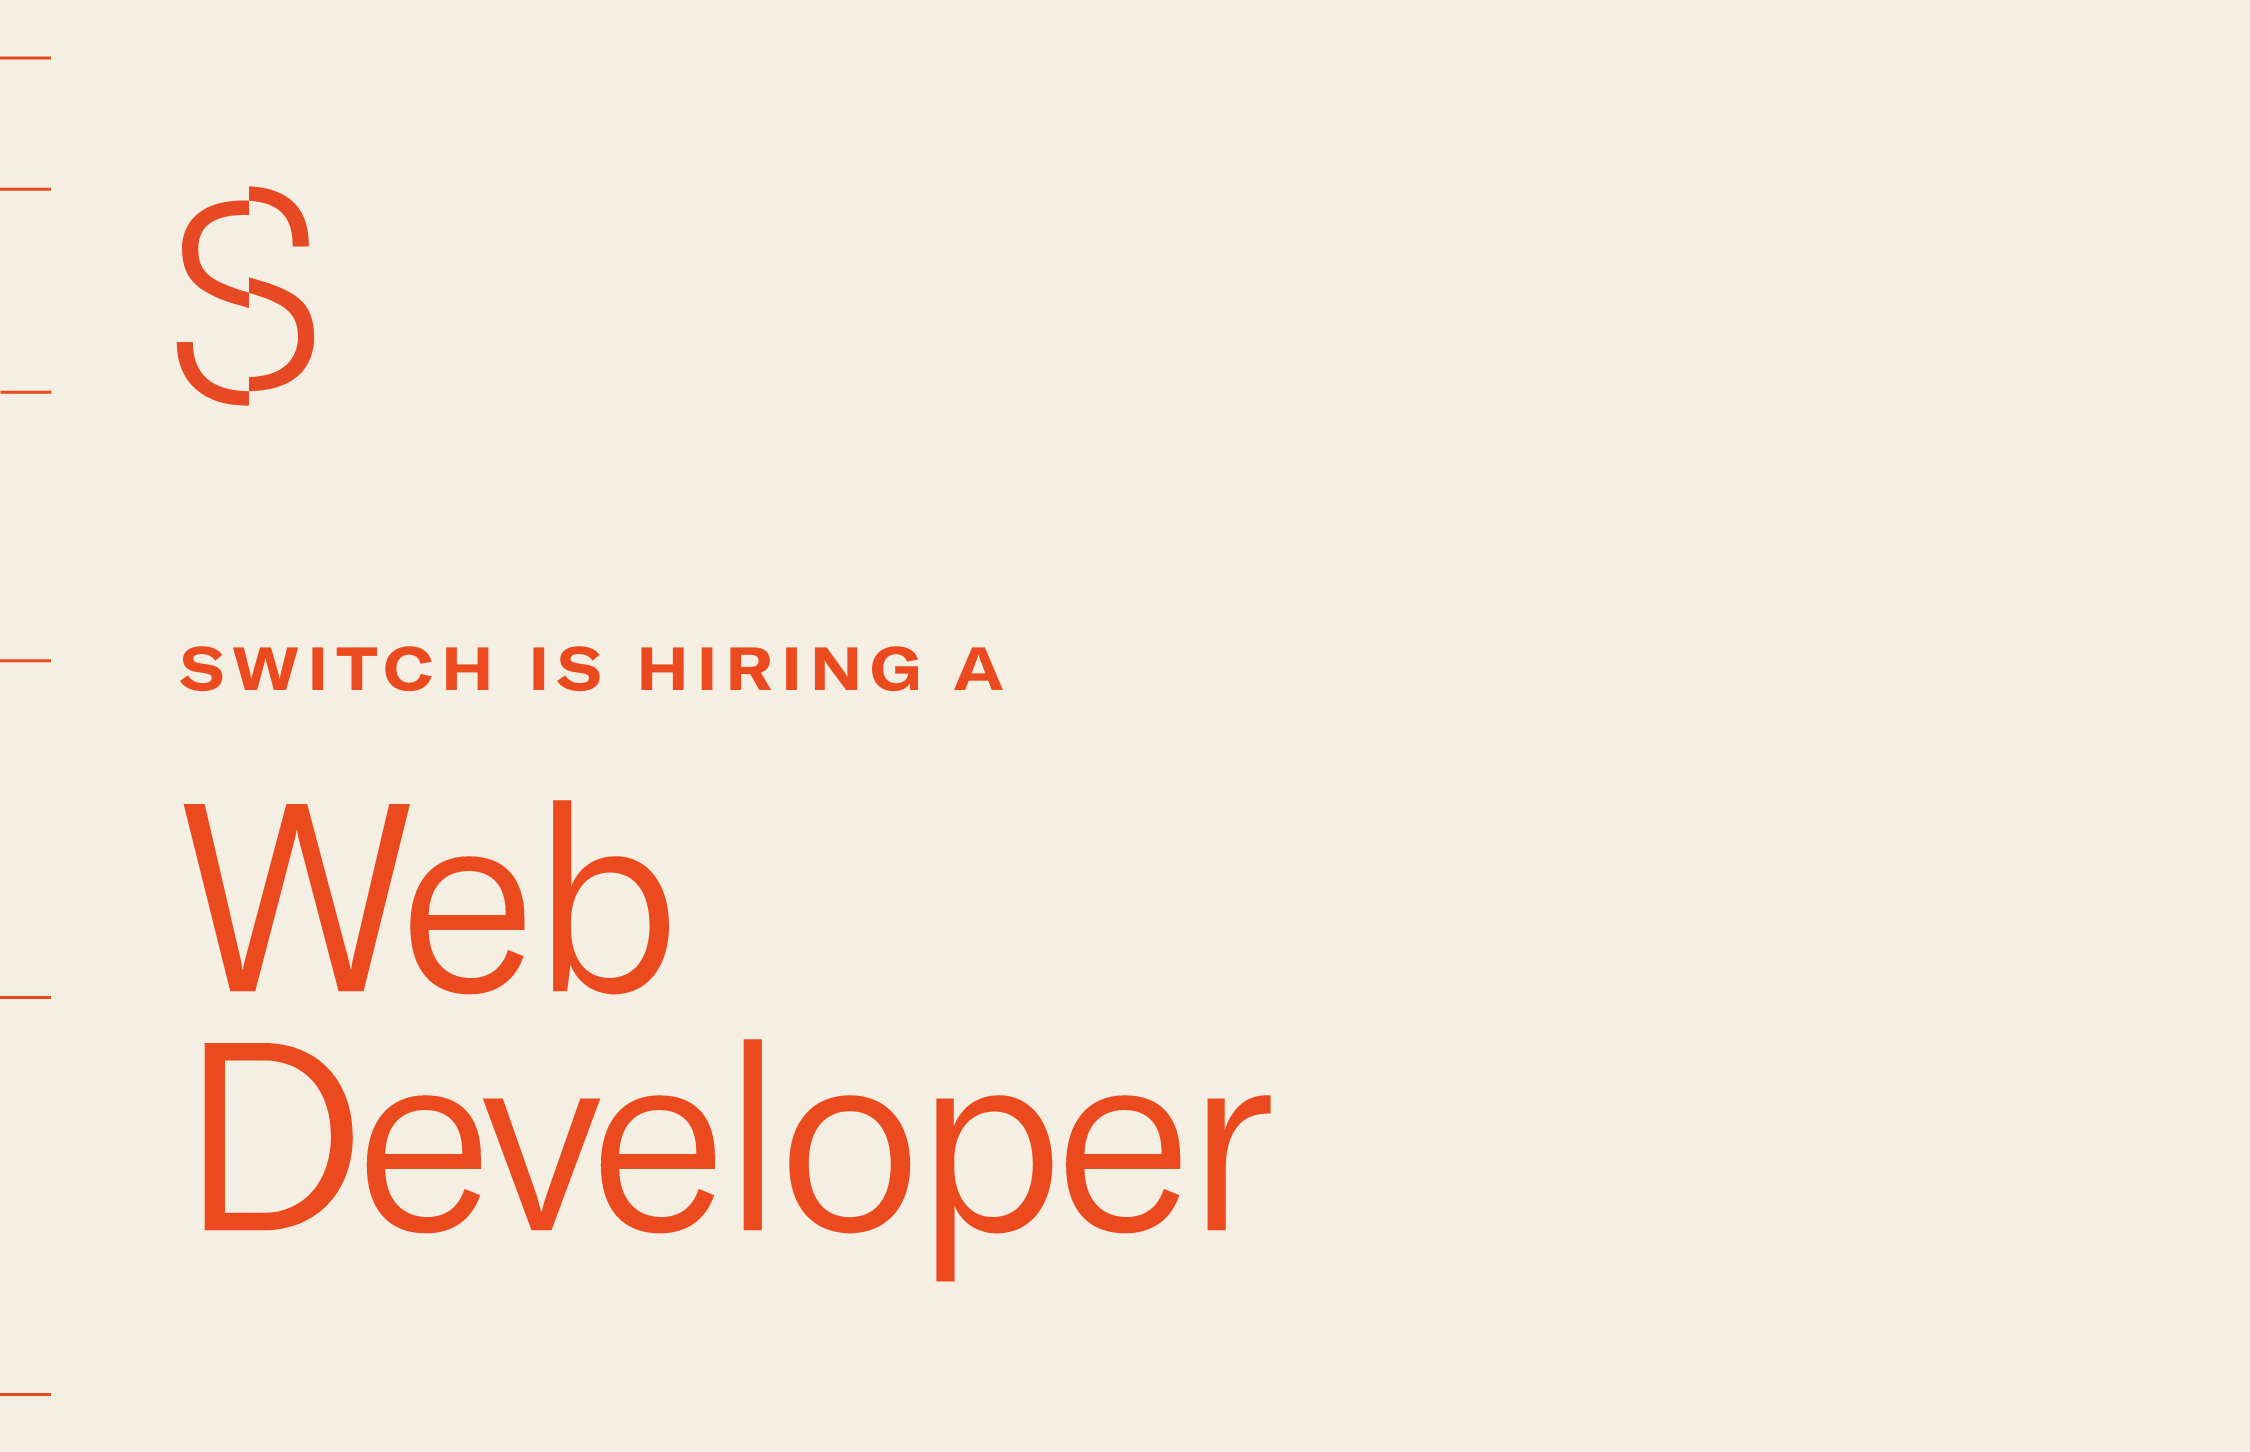 Switch is Hiring a Web Developer